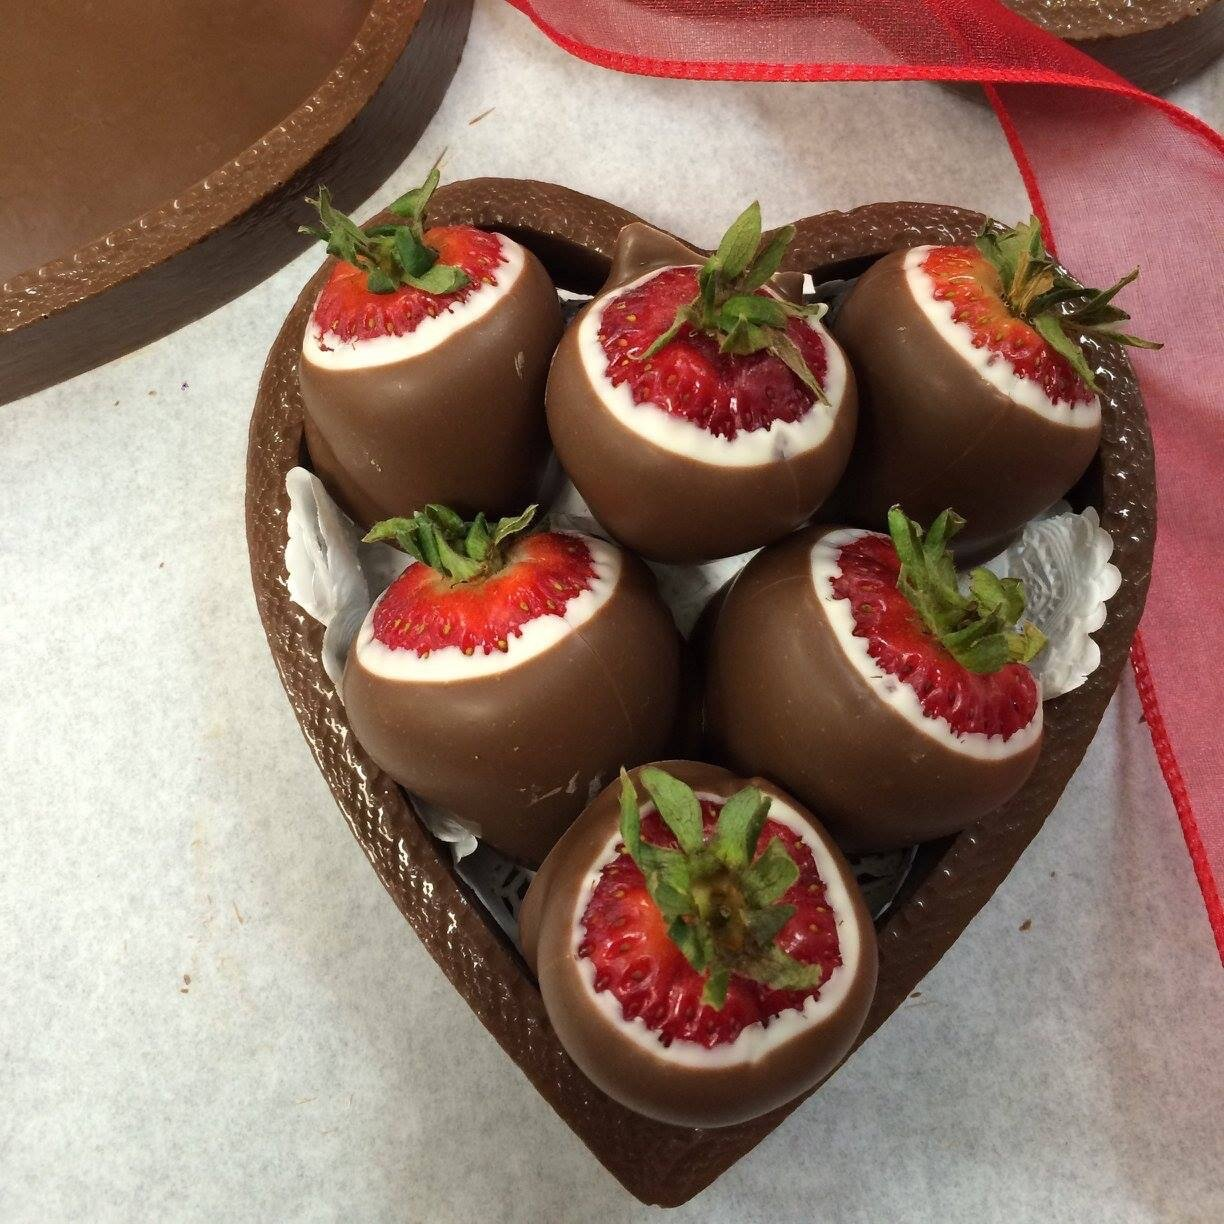 Chocolate Heart Box Filled With Chocolate Covered Strawberries P U Or Delivery Only Bellbrook Chocolate Shoppe